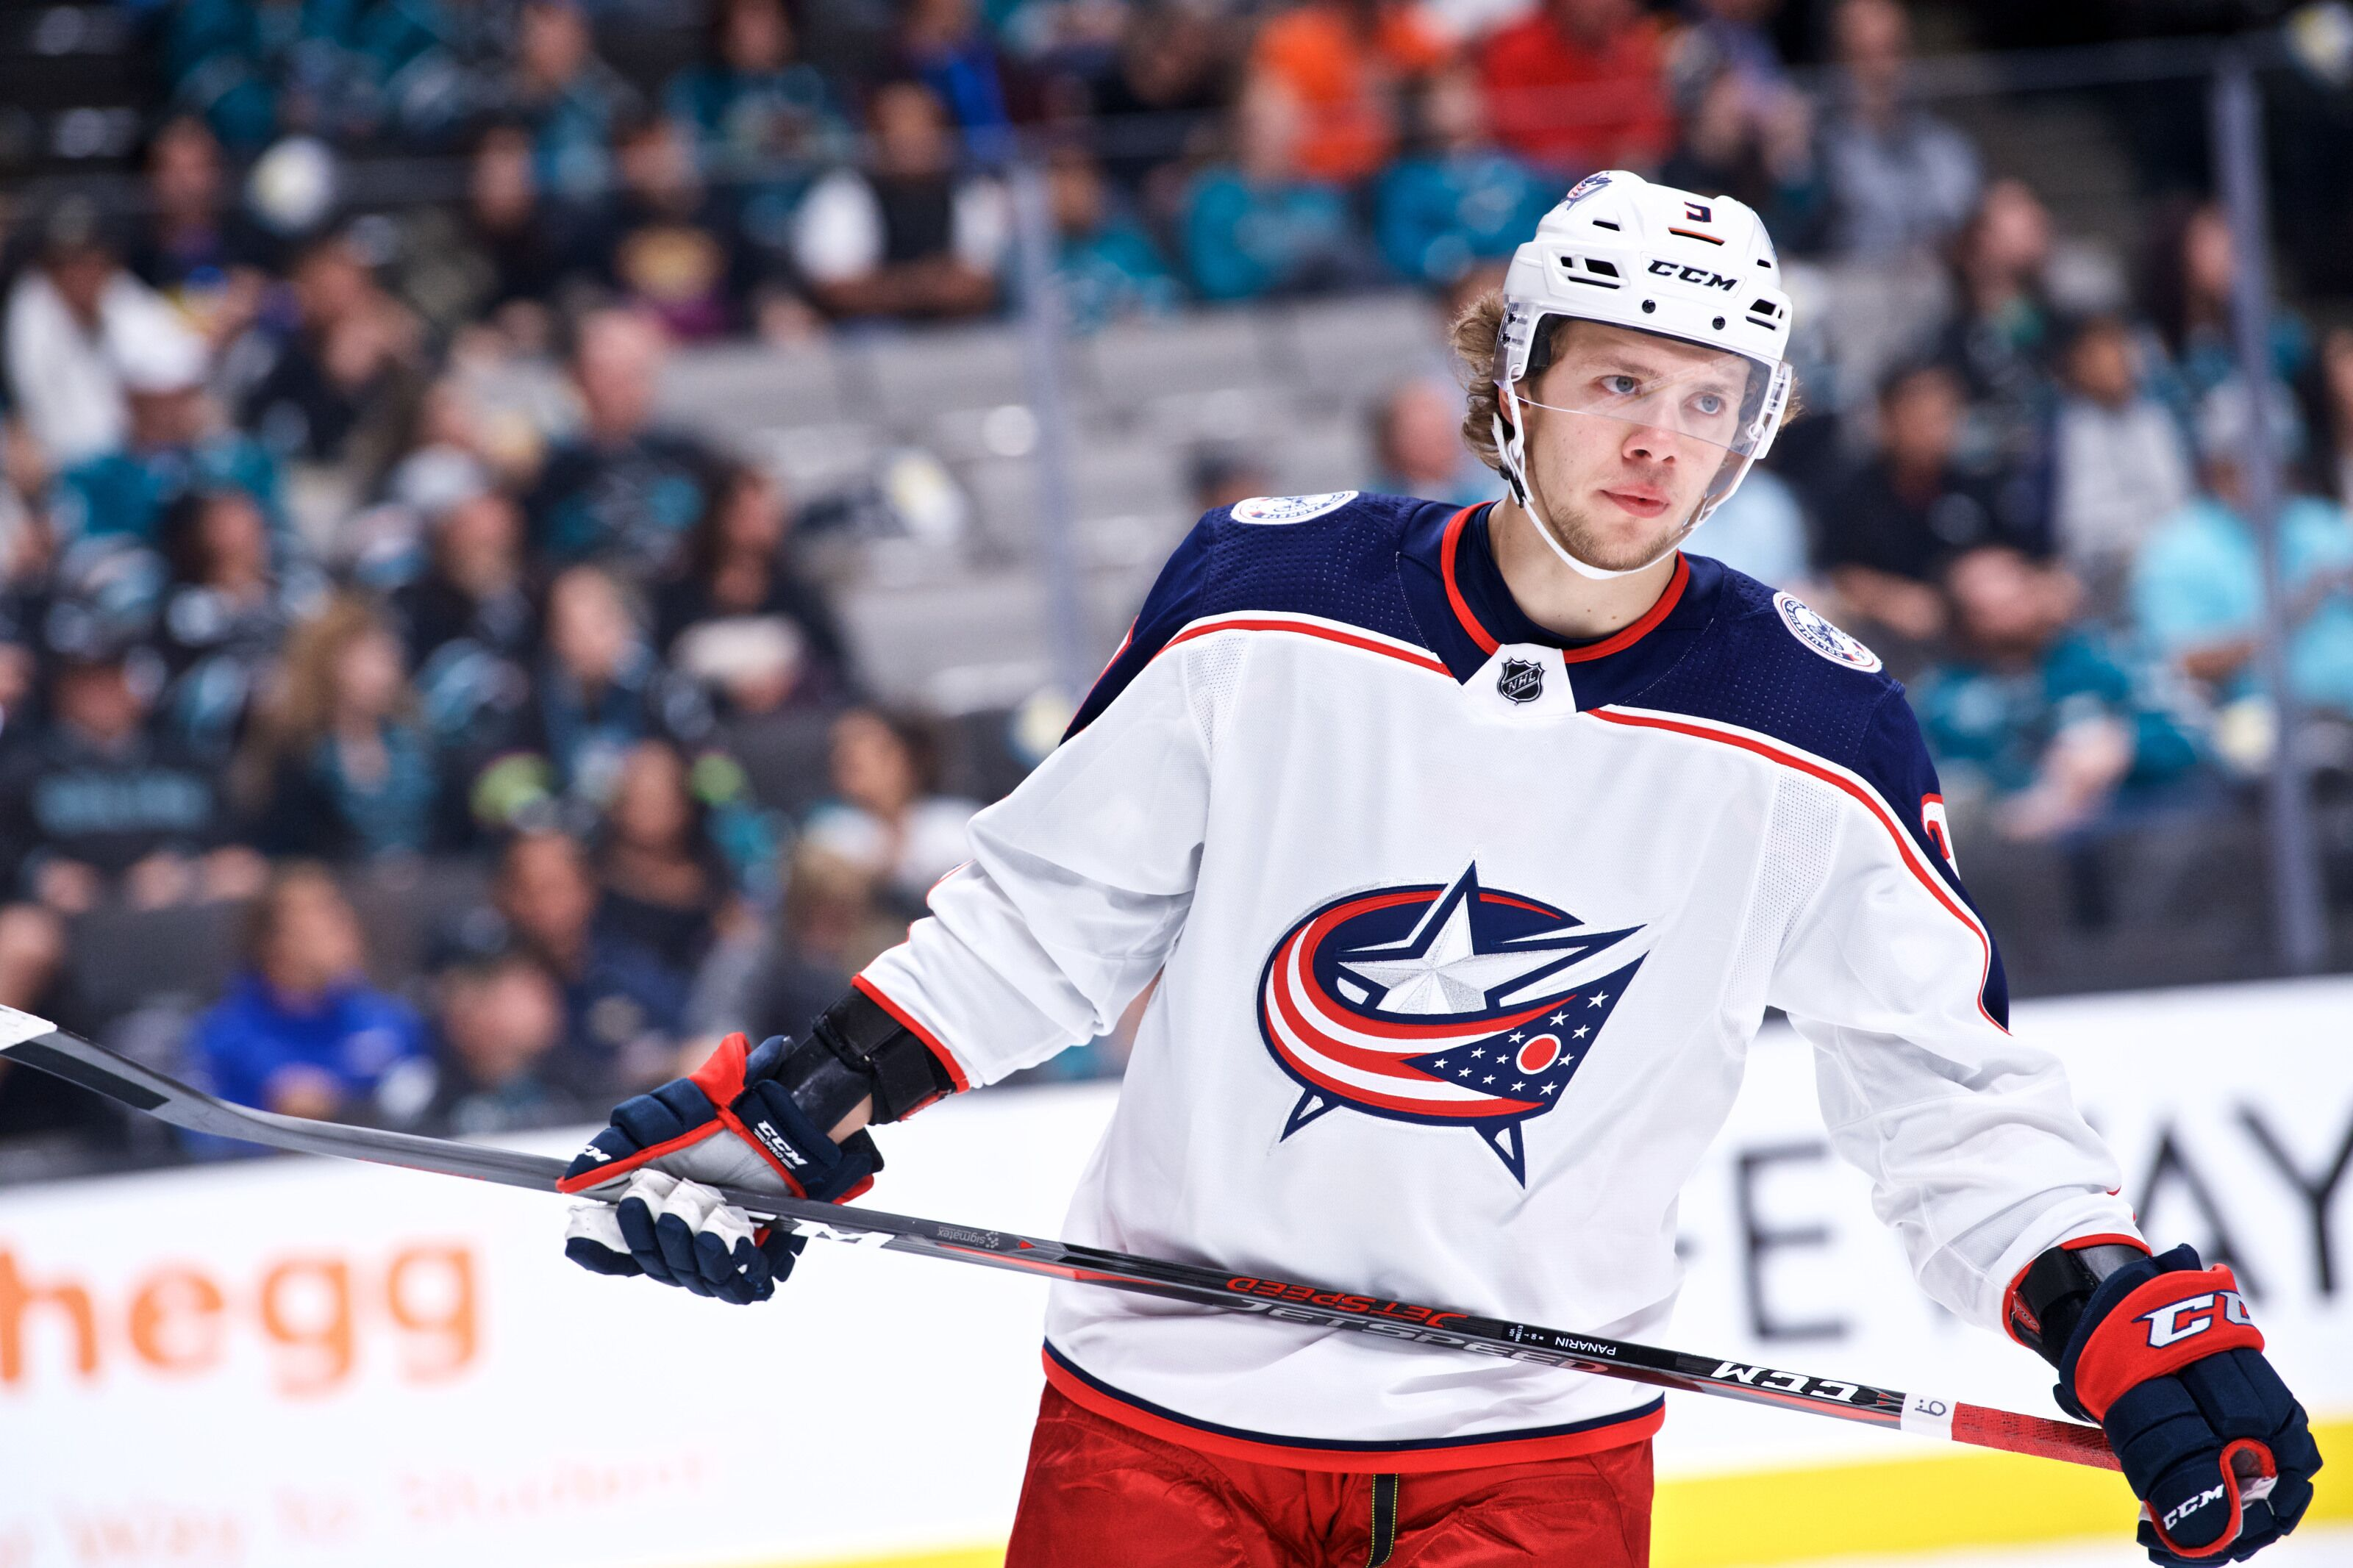 panarin artemi jackets columbus quietly team leads points